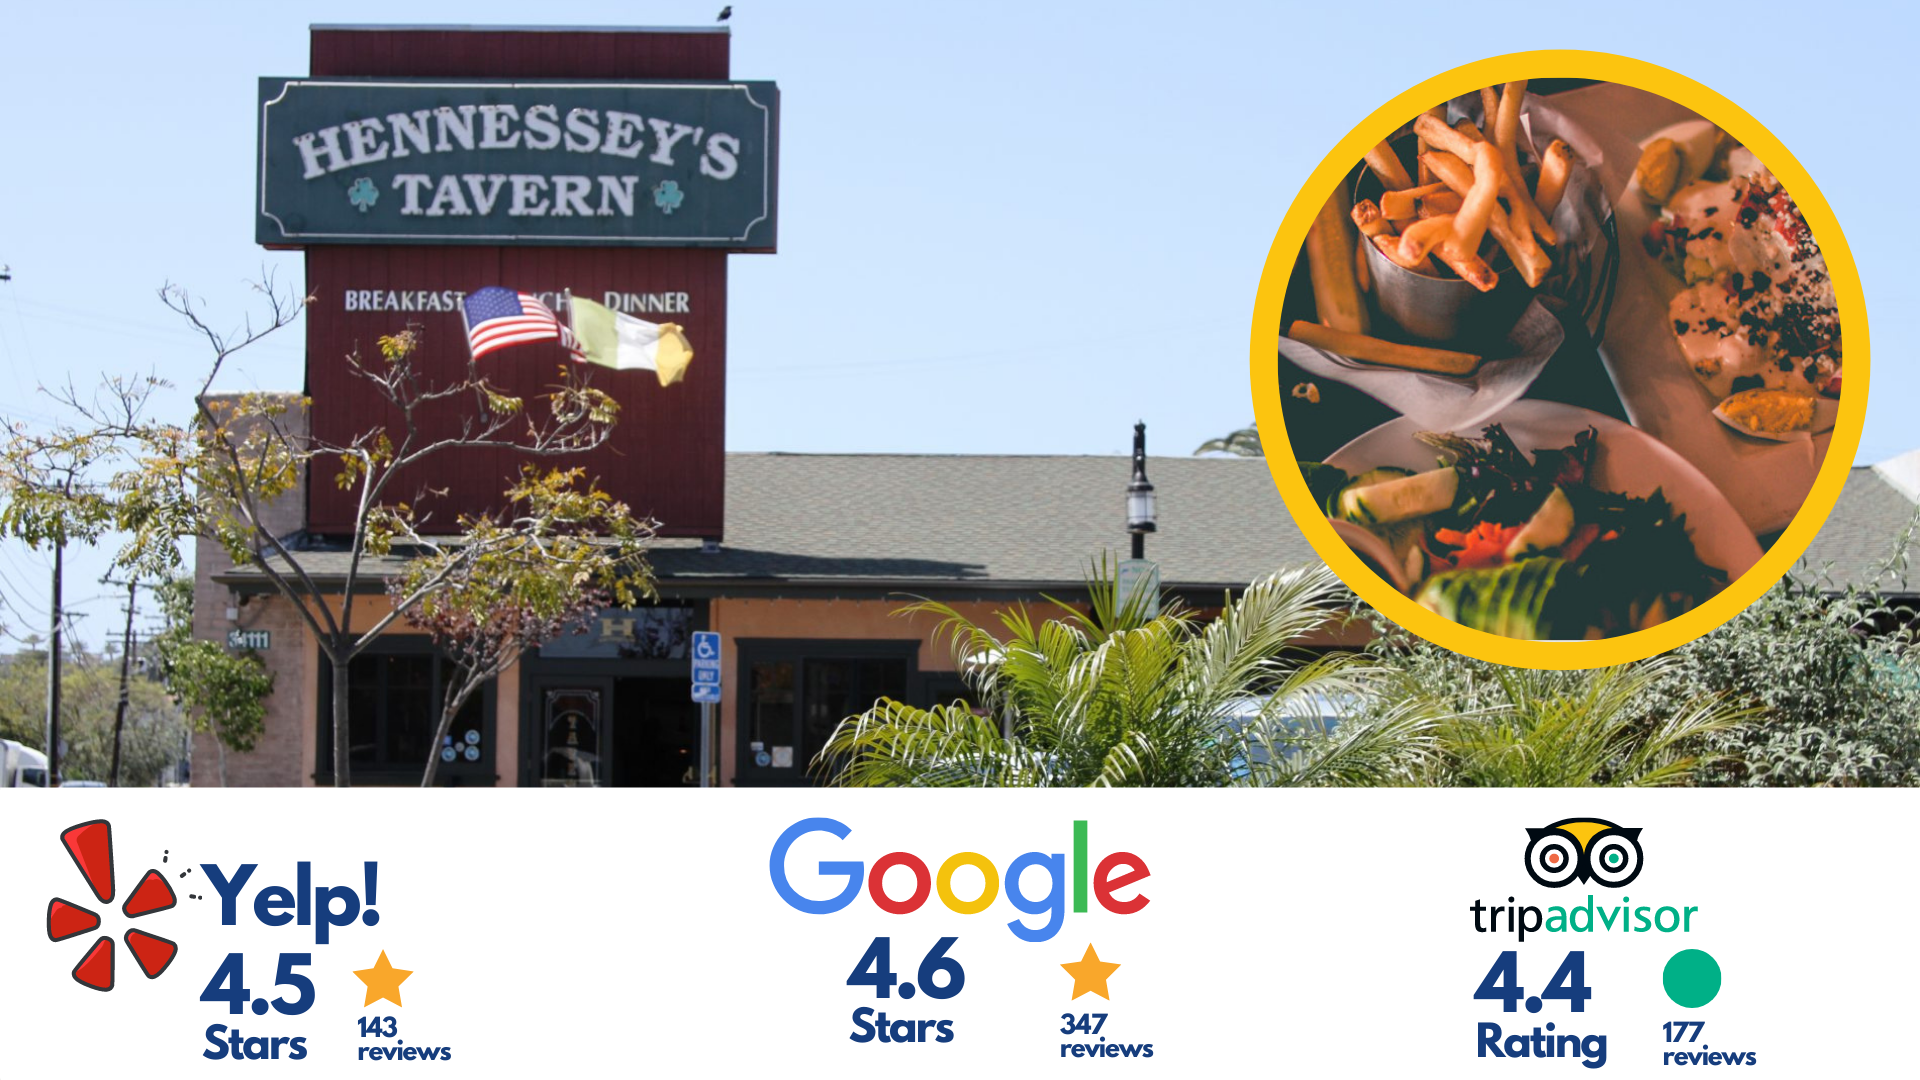 Hennessey's Tavern, Dana Point, California (Golden Lantern Plaza)